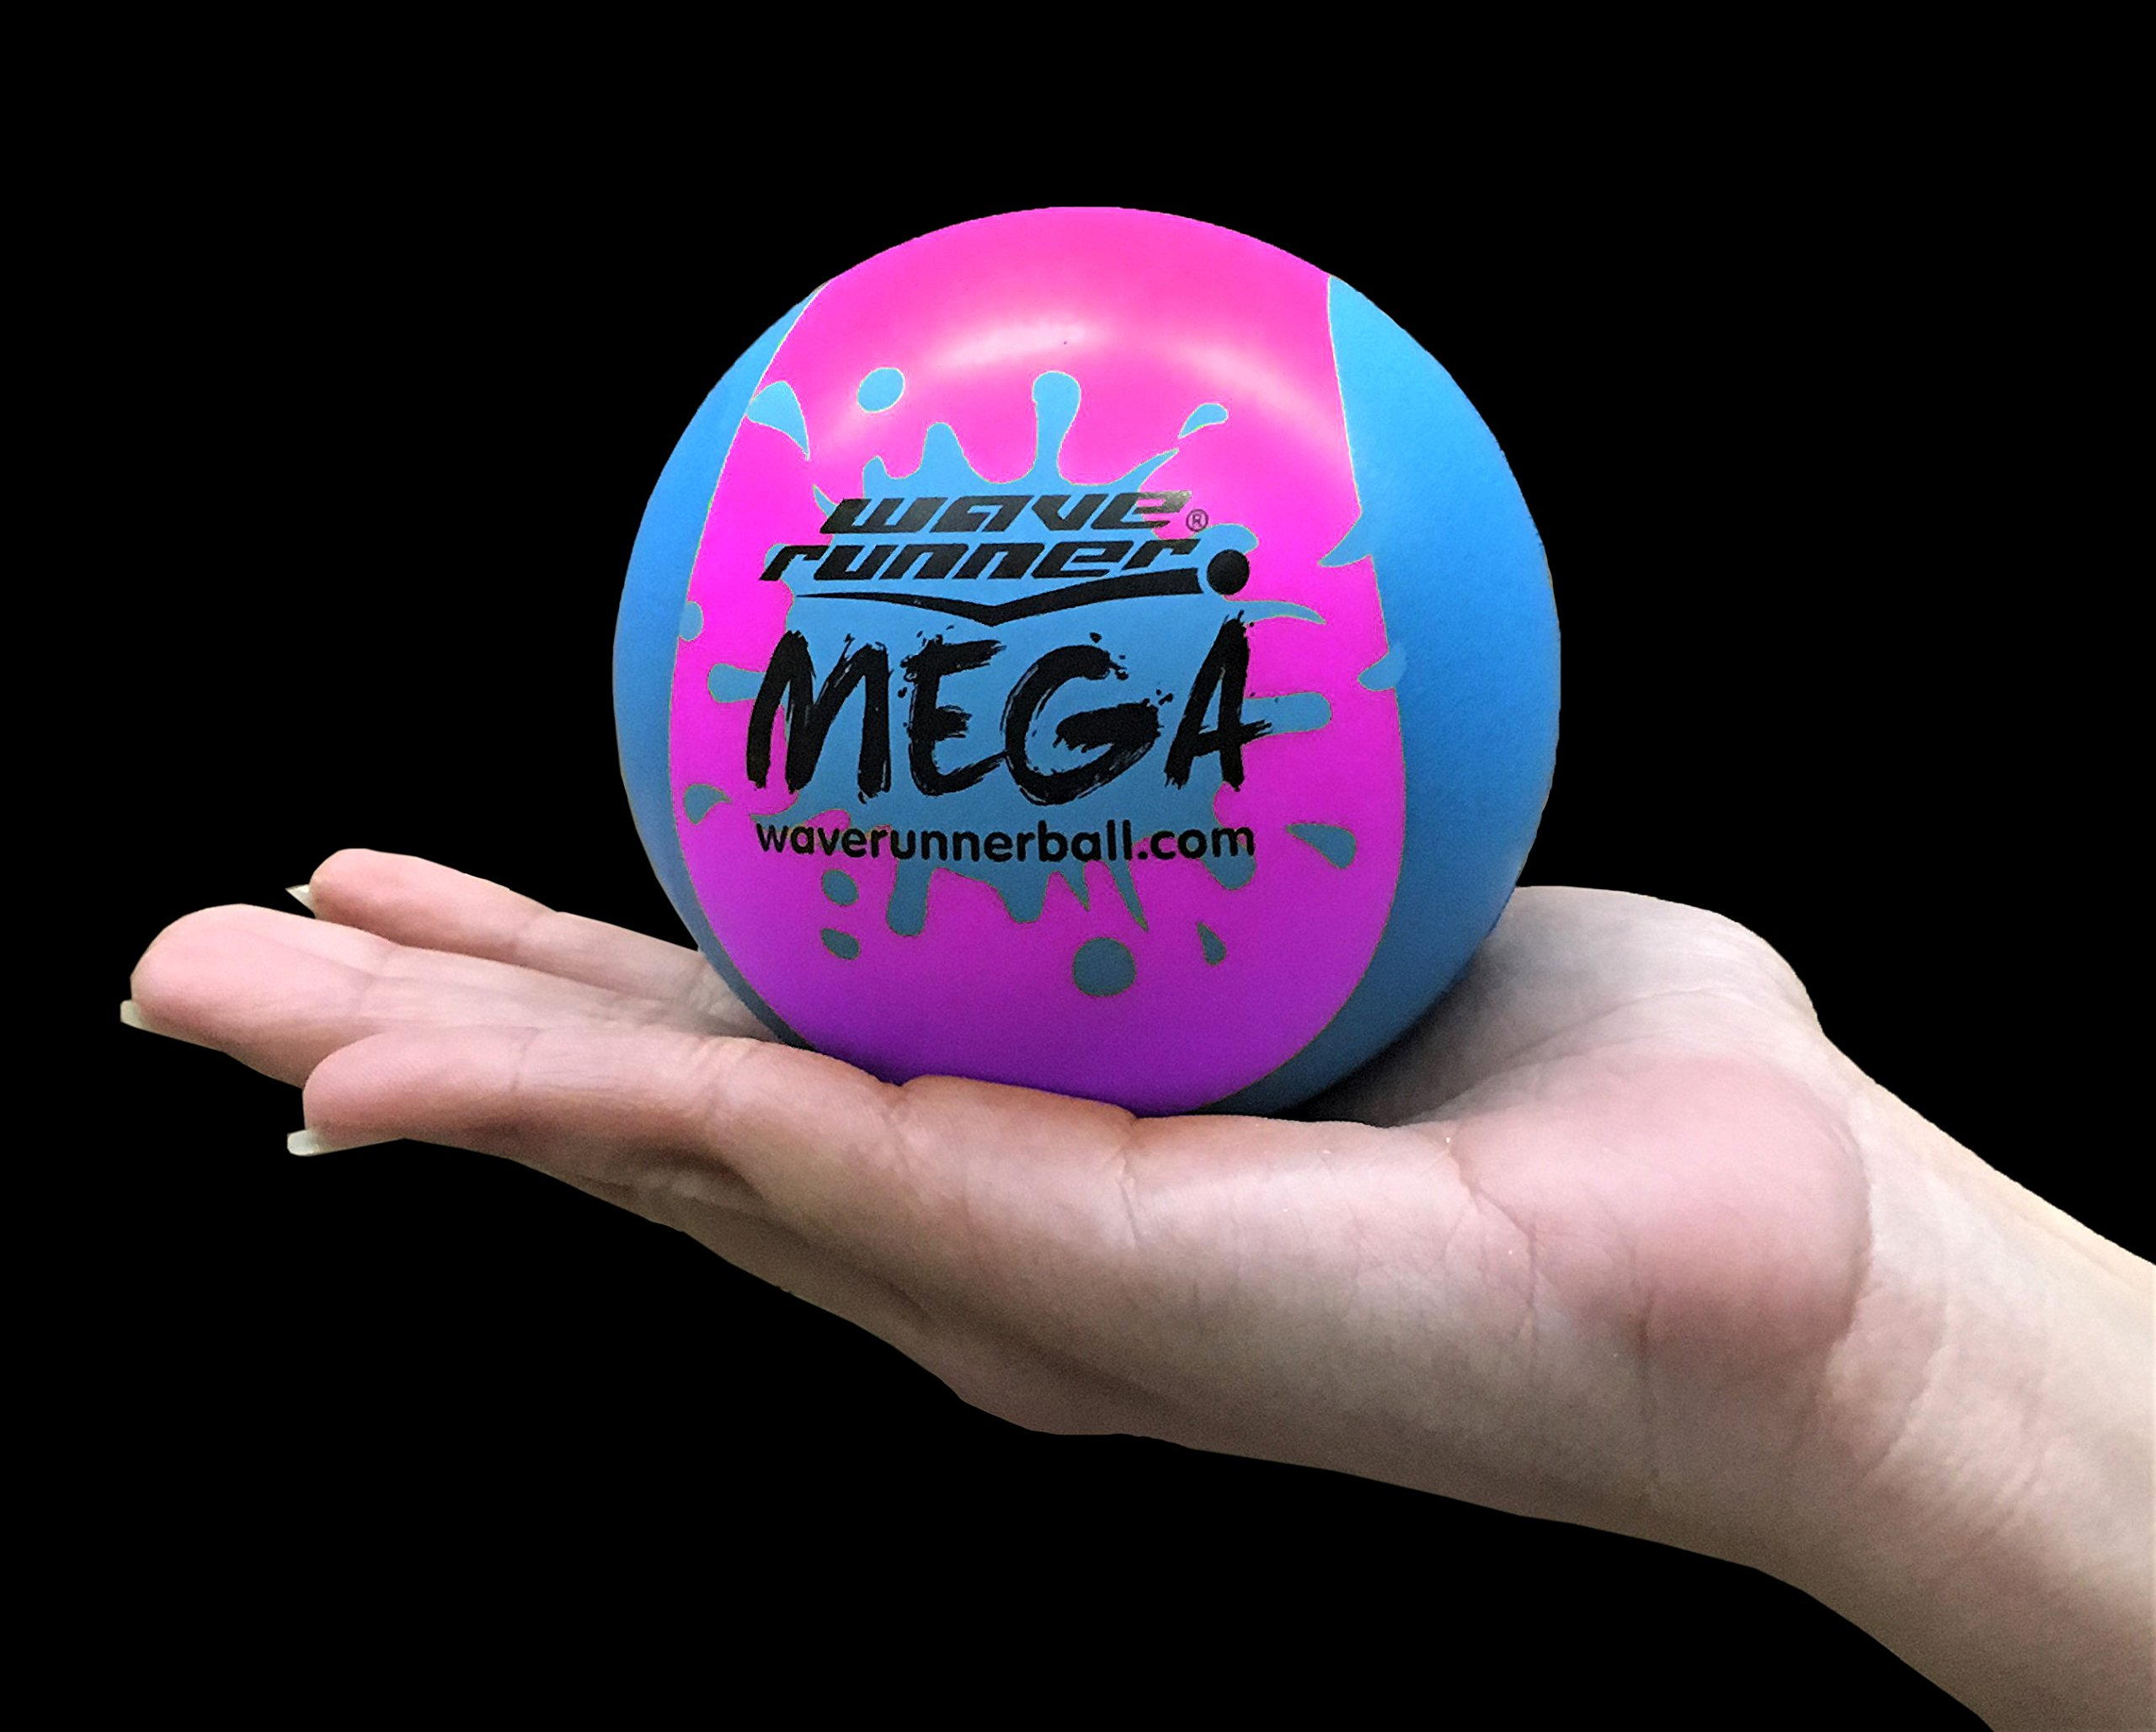 Wave Runner Water Mega 2-Tone Hydro Bouncing Ball Great for Beach Pool Pond Water Parks Vacation Summer Spring Water ls and Water Games is Here Waterproof BULK PRICE (Pink Blue)